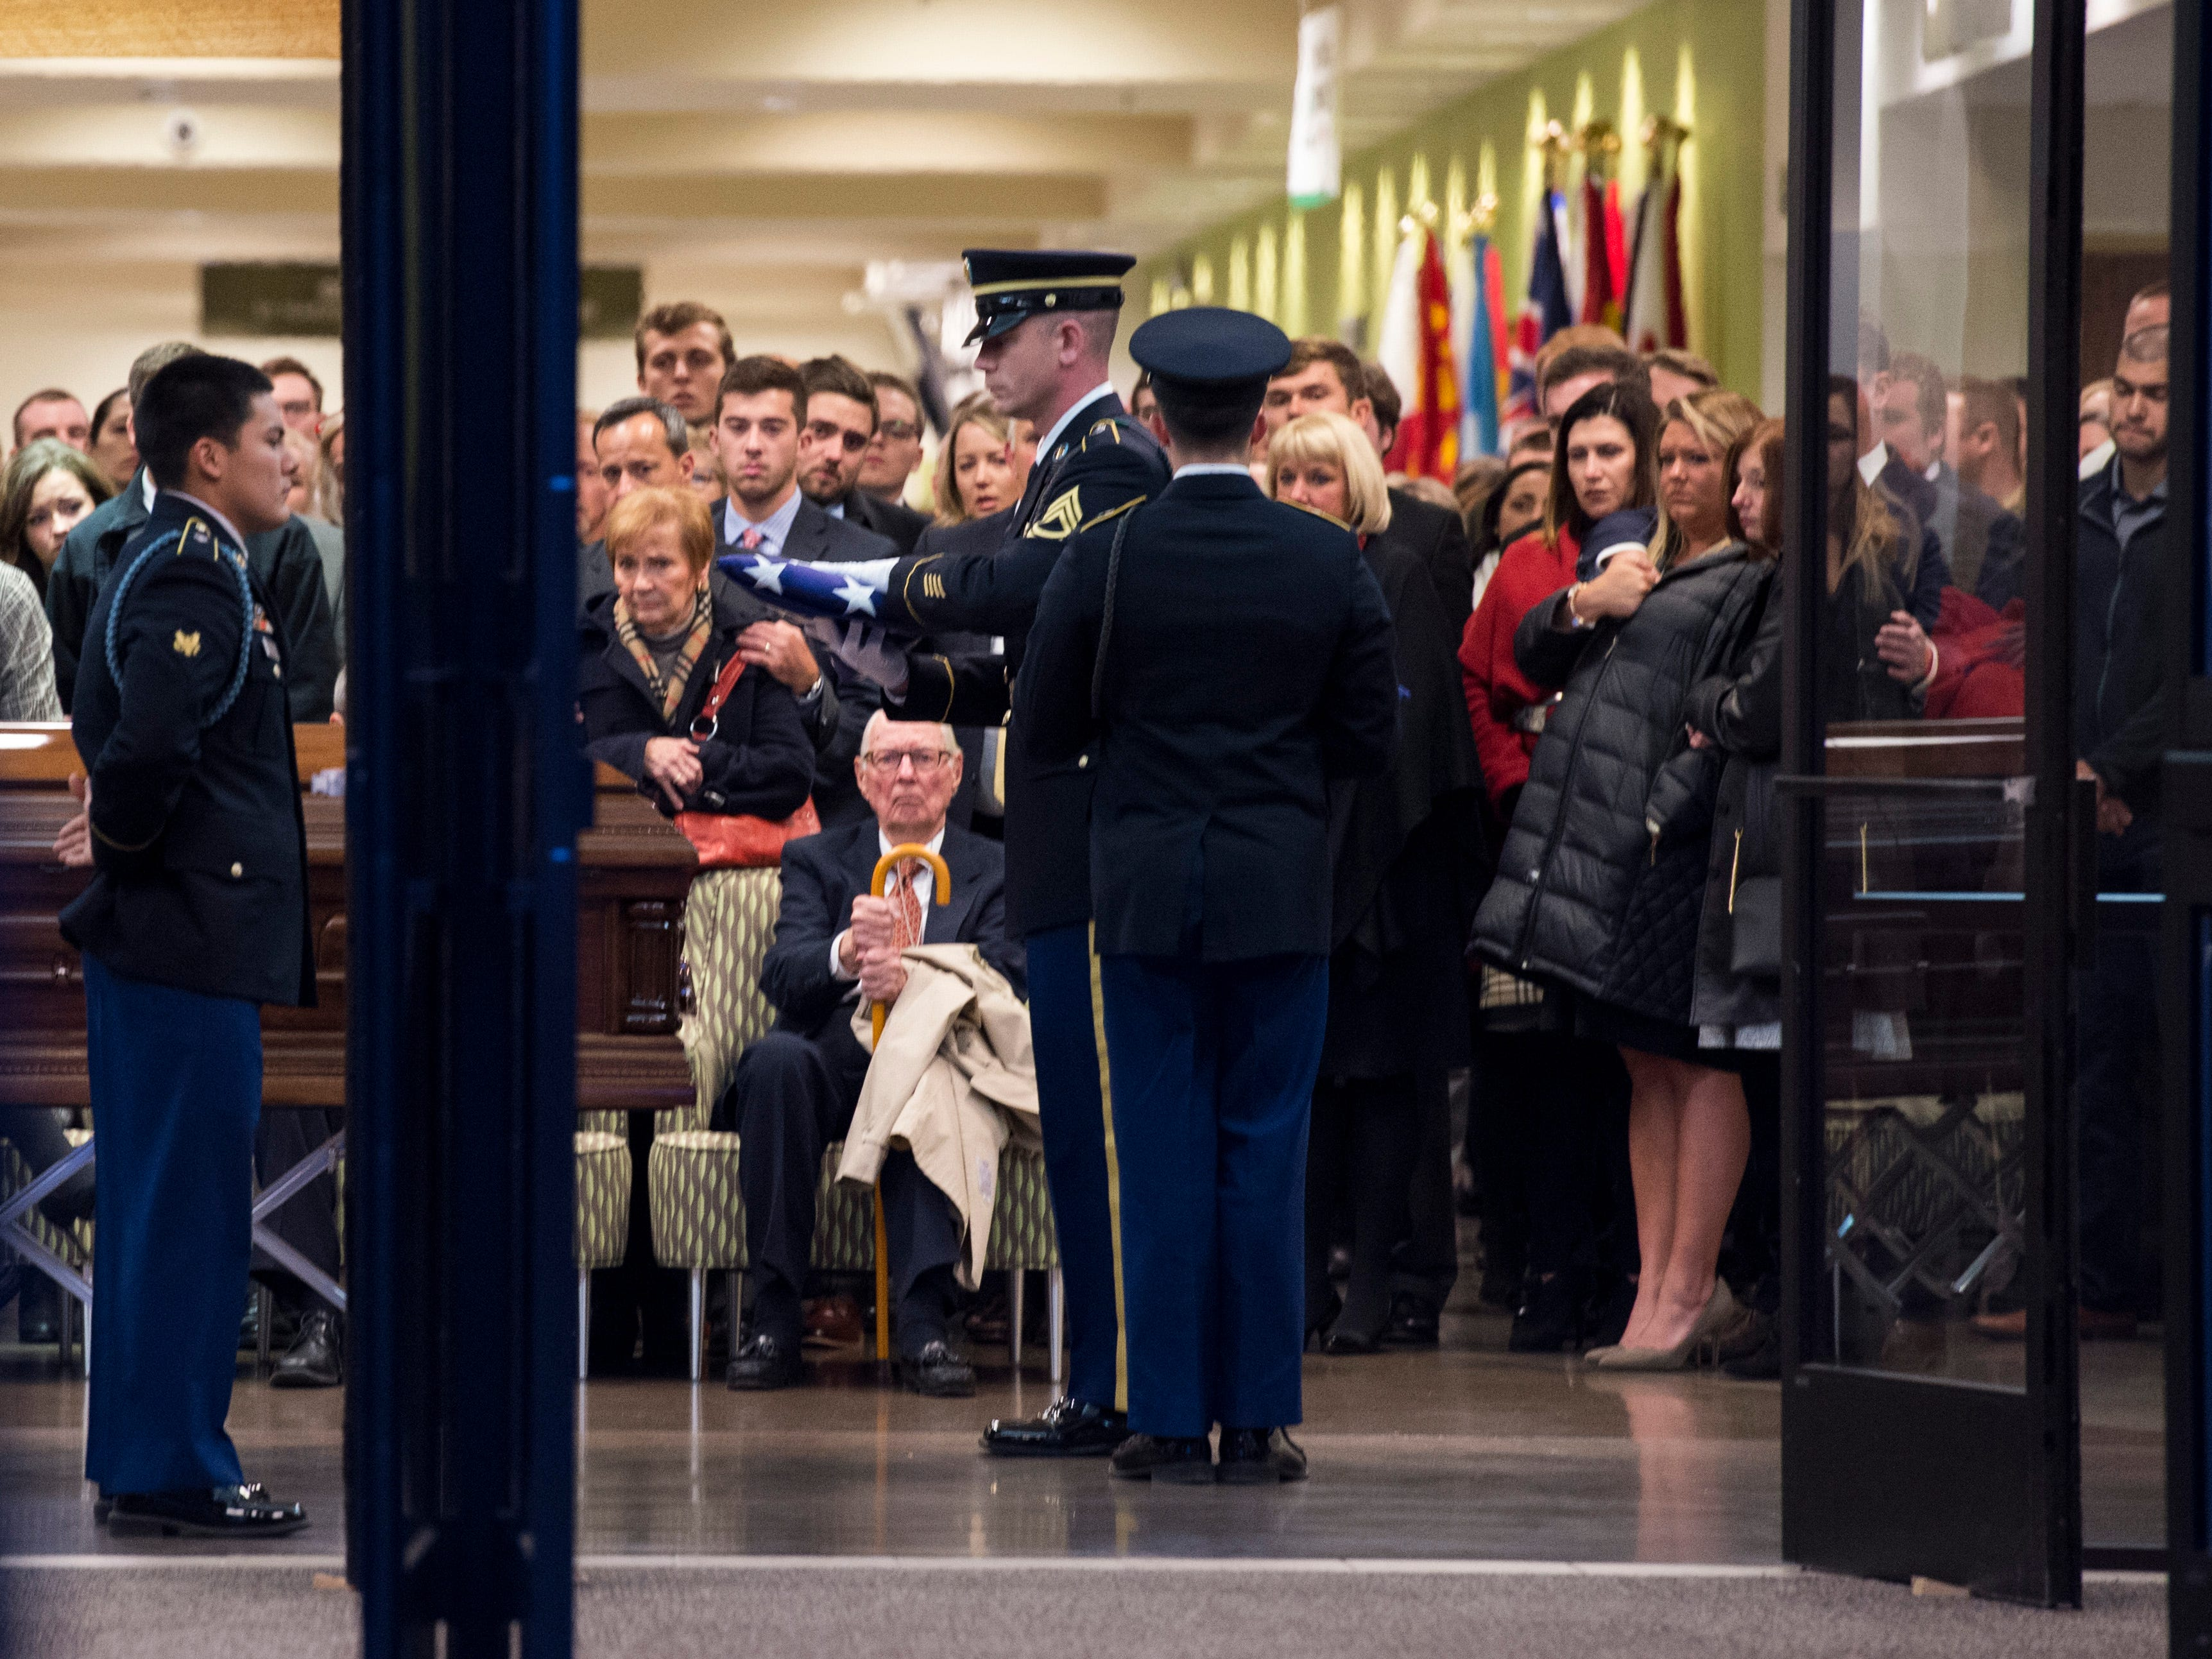 "Sgt. First Class Peno places the flag on the casket before handing it off to a family member in the lobby of Christian Fellowship Church during the ""Celebration of Life"" ceremony for Army Sgt. Drew Watters in Evansville, Ind., Wednesday afternoon, Nov. 14, 2018. The 23-year-old Evansville native was killed in a training accident in his Tacoma, Washington, base."